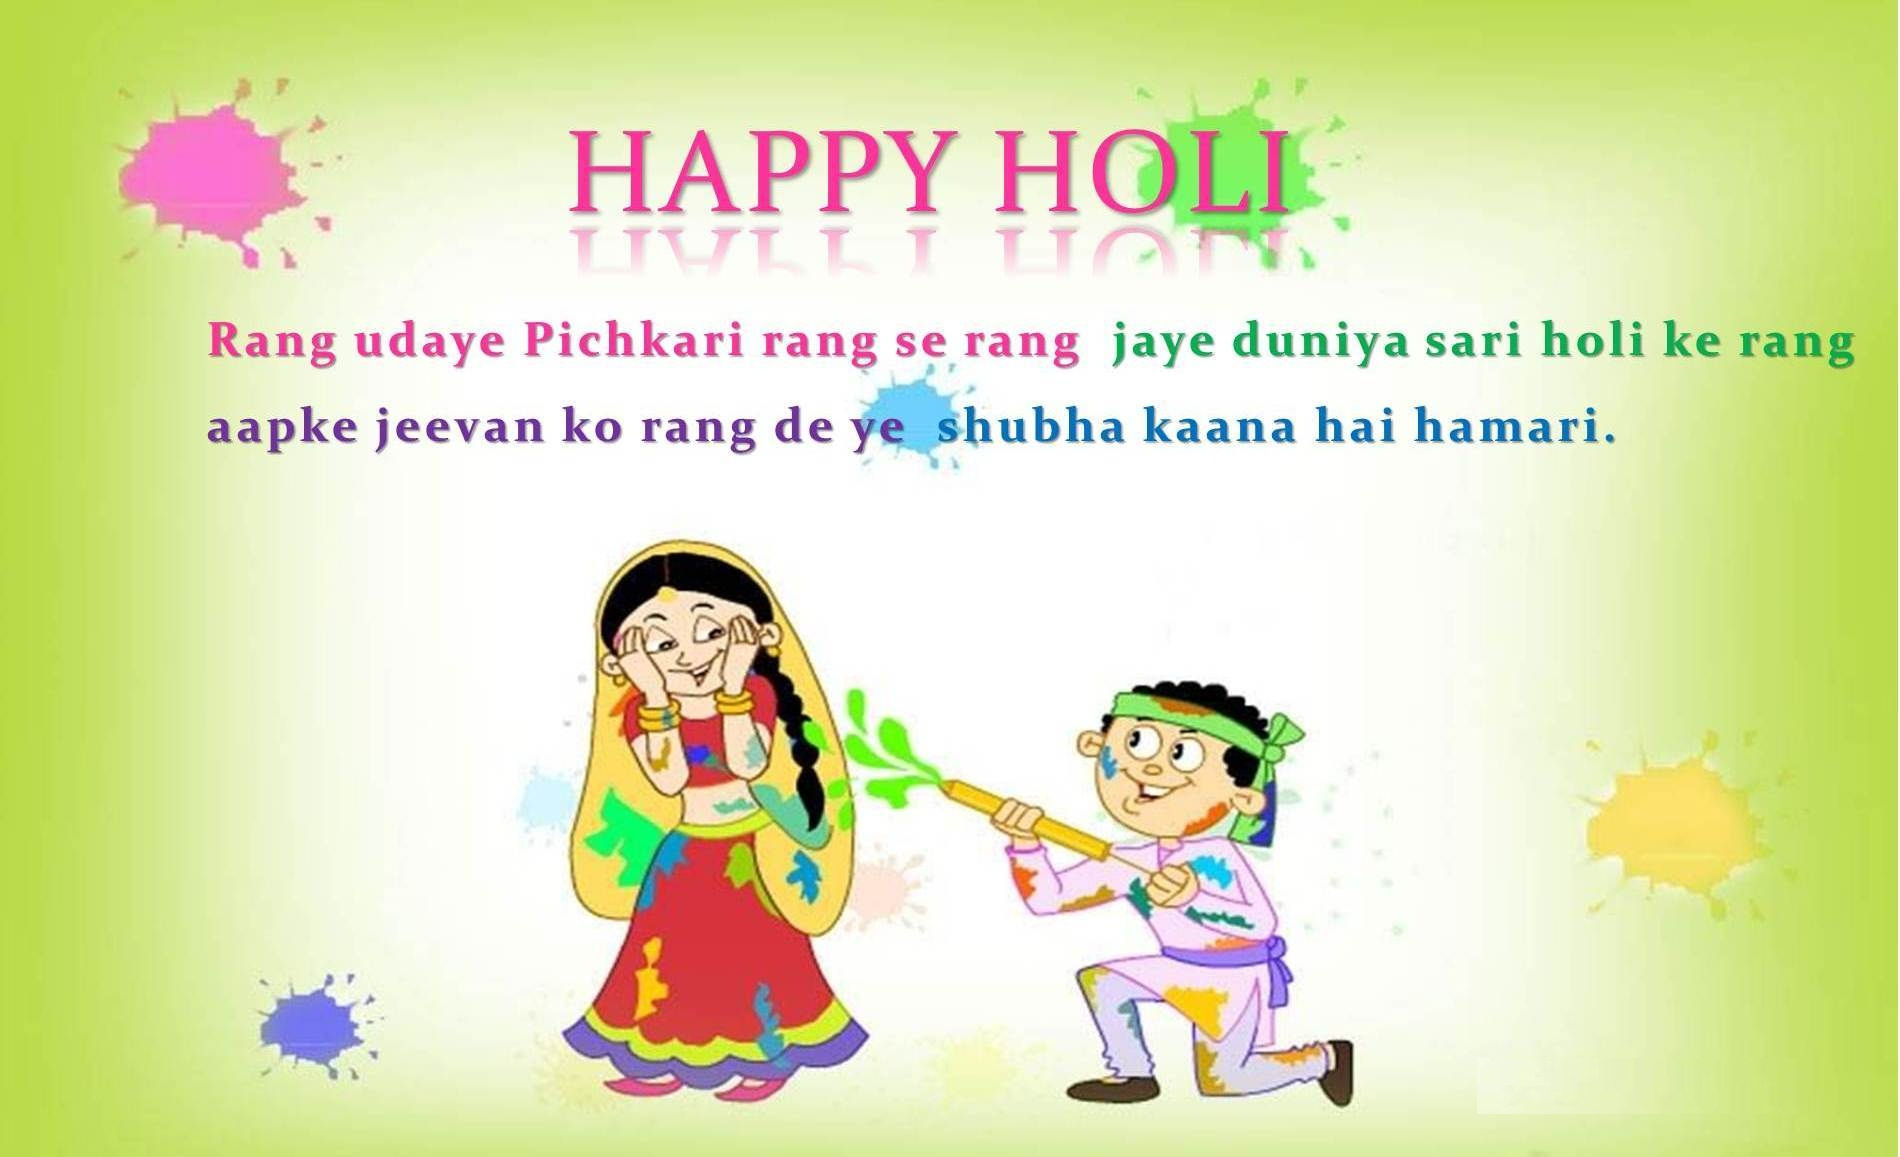 Happy Holi wishes Quotes, Happy Holi Whatsapp Status, Happy Holi Status For Whatsapp, Happy Holi Whatsapp Status in English, Happy Holi English Status